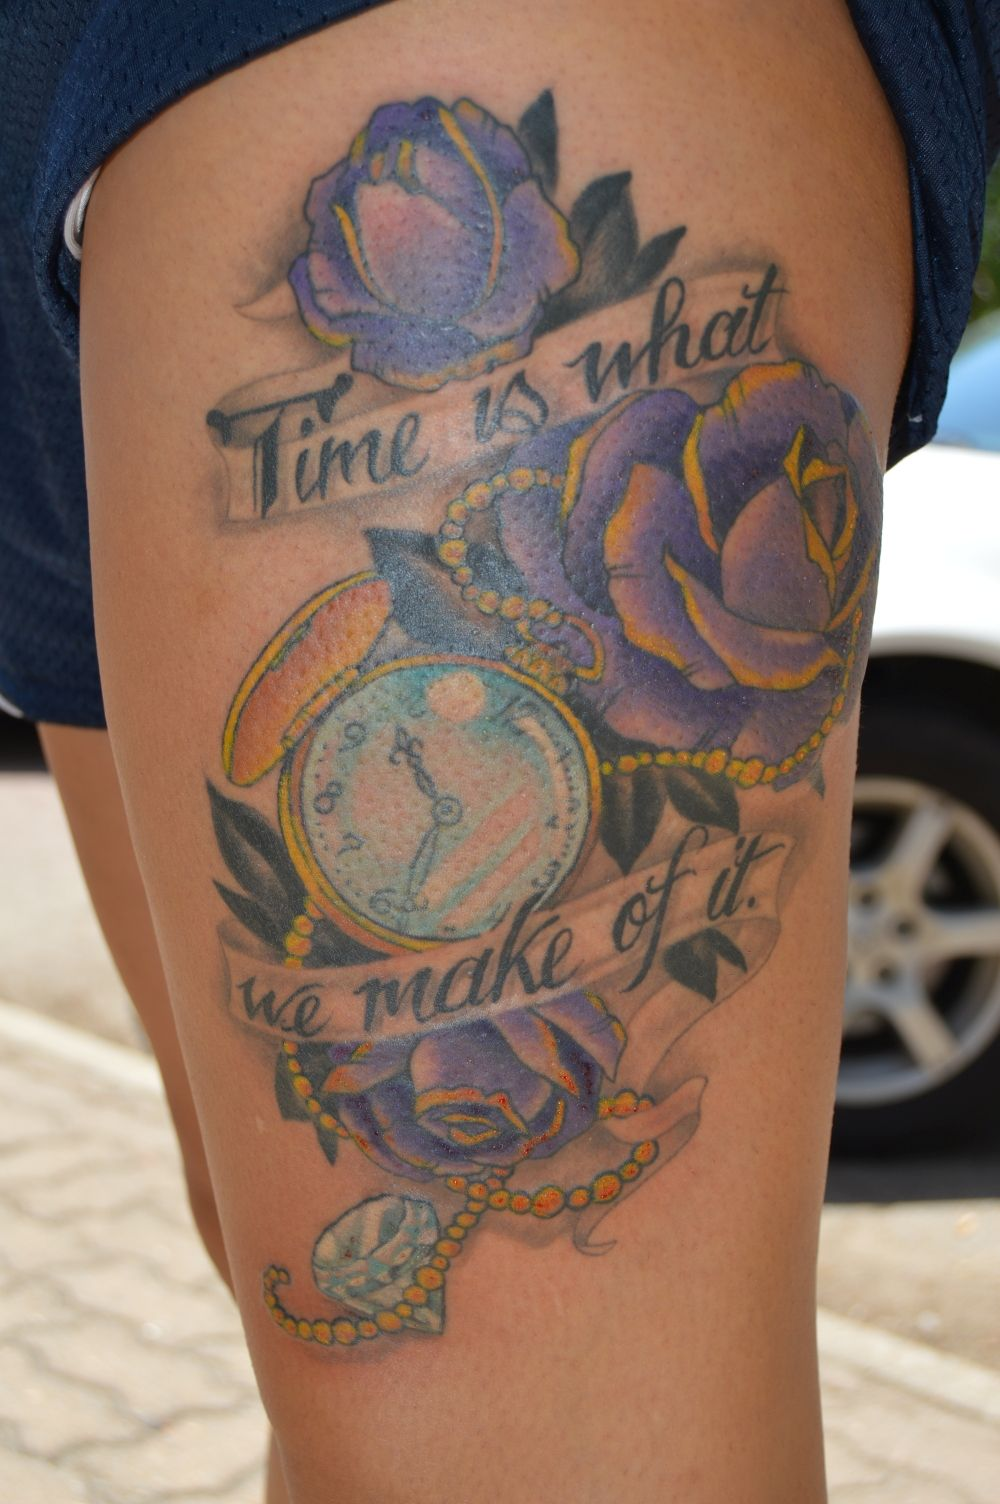 45d1deafb True Grit Tattoo Fort Smith Arkansas - All About Tattoo